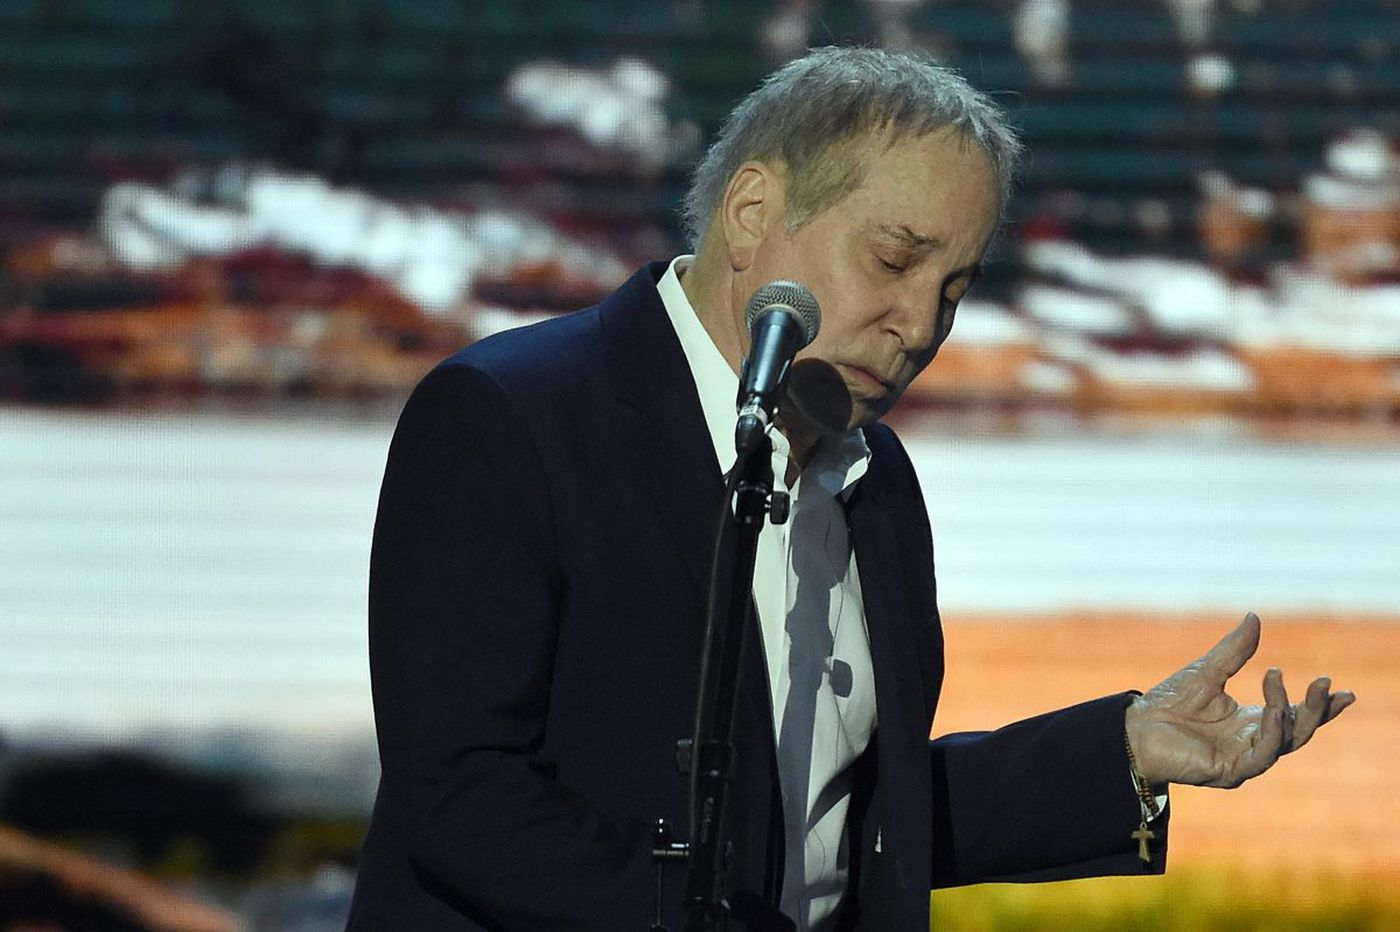 Paul Simon will play Philly for the last time this summer